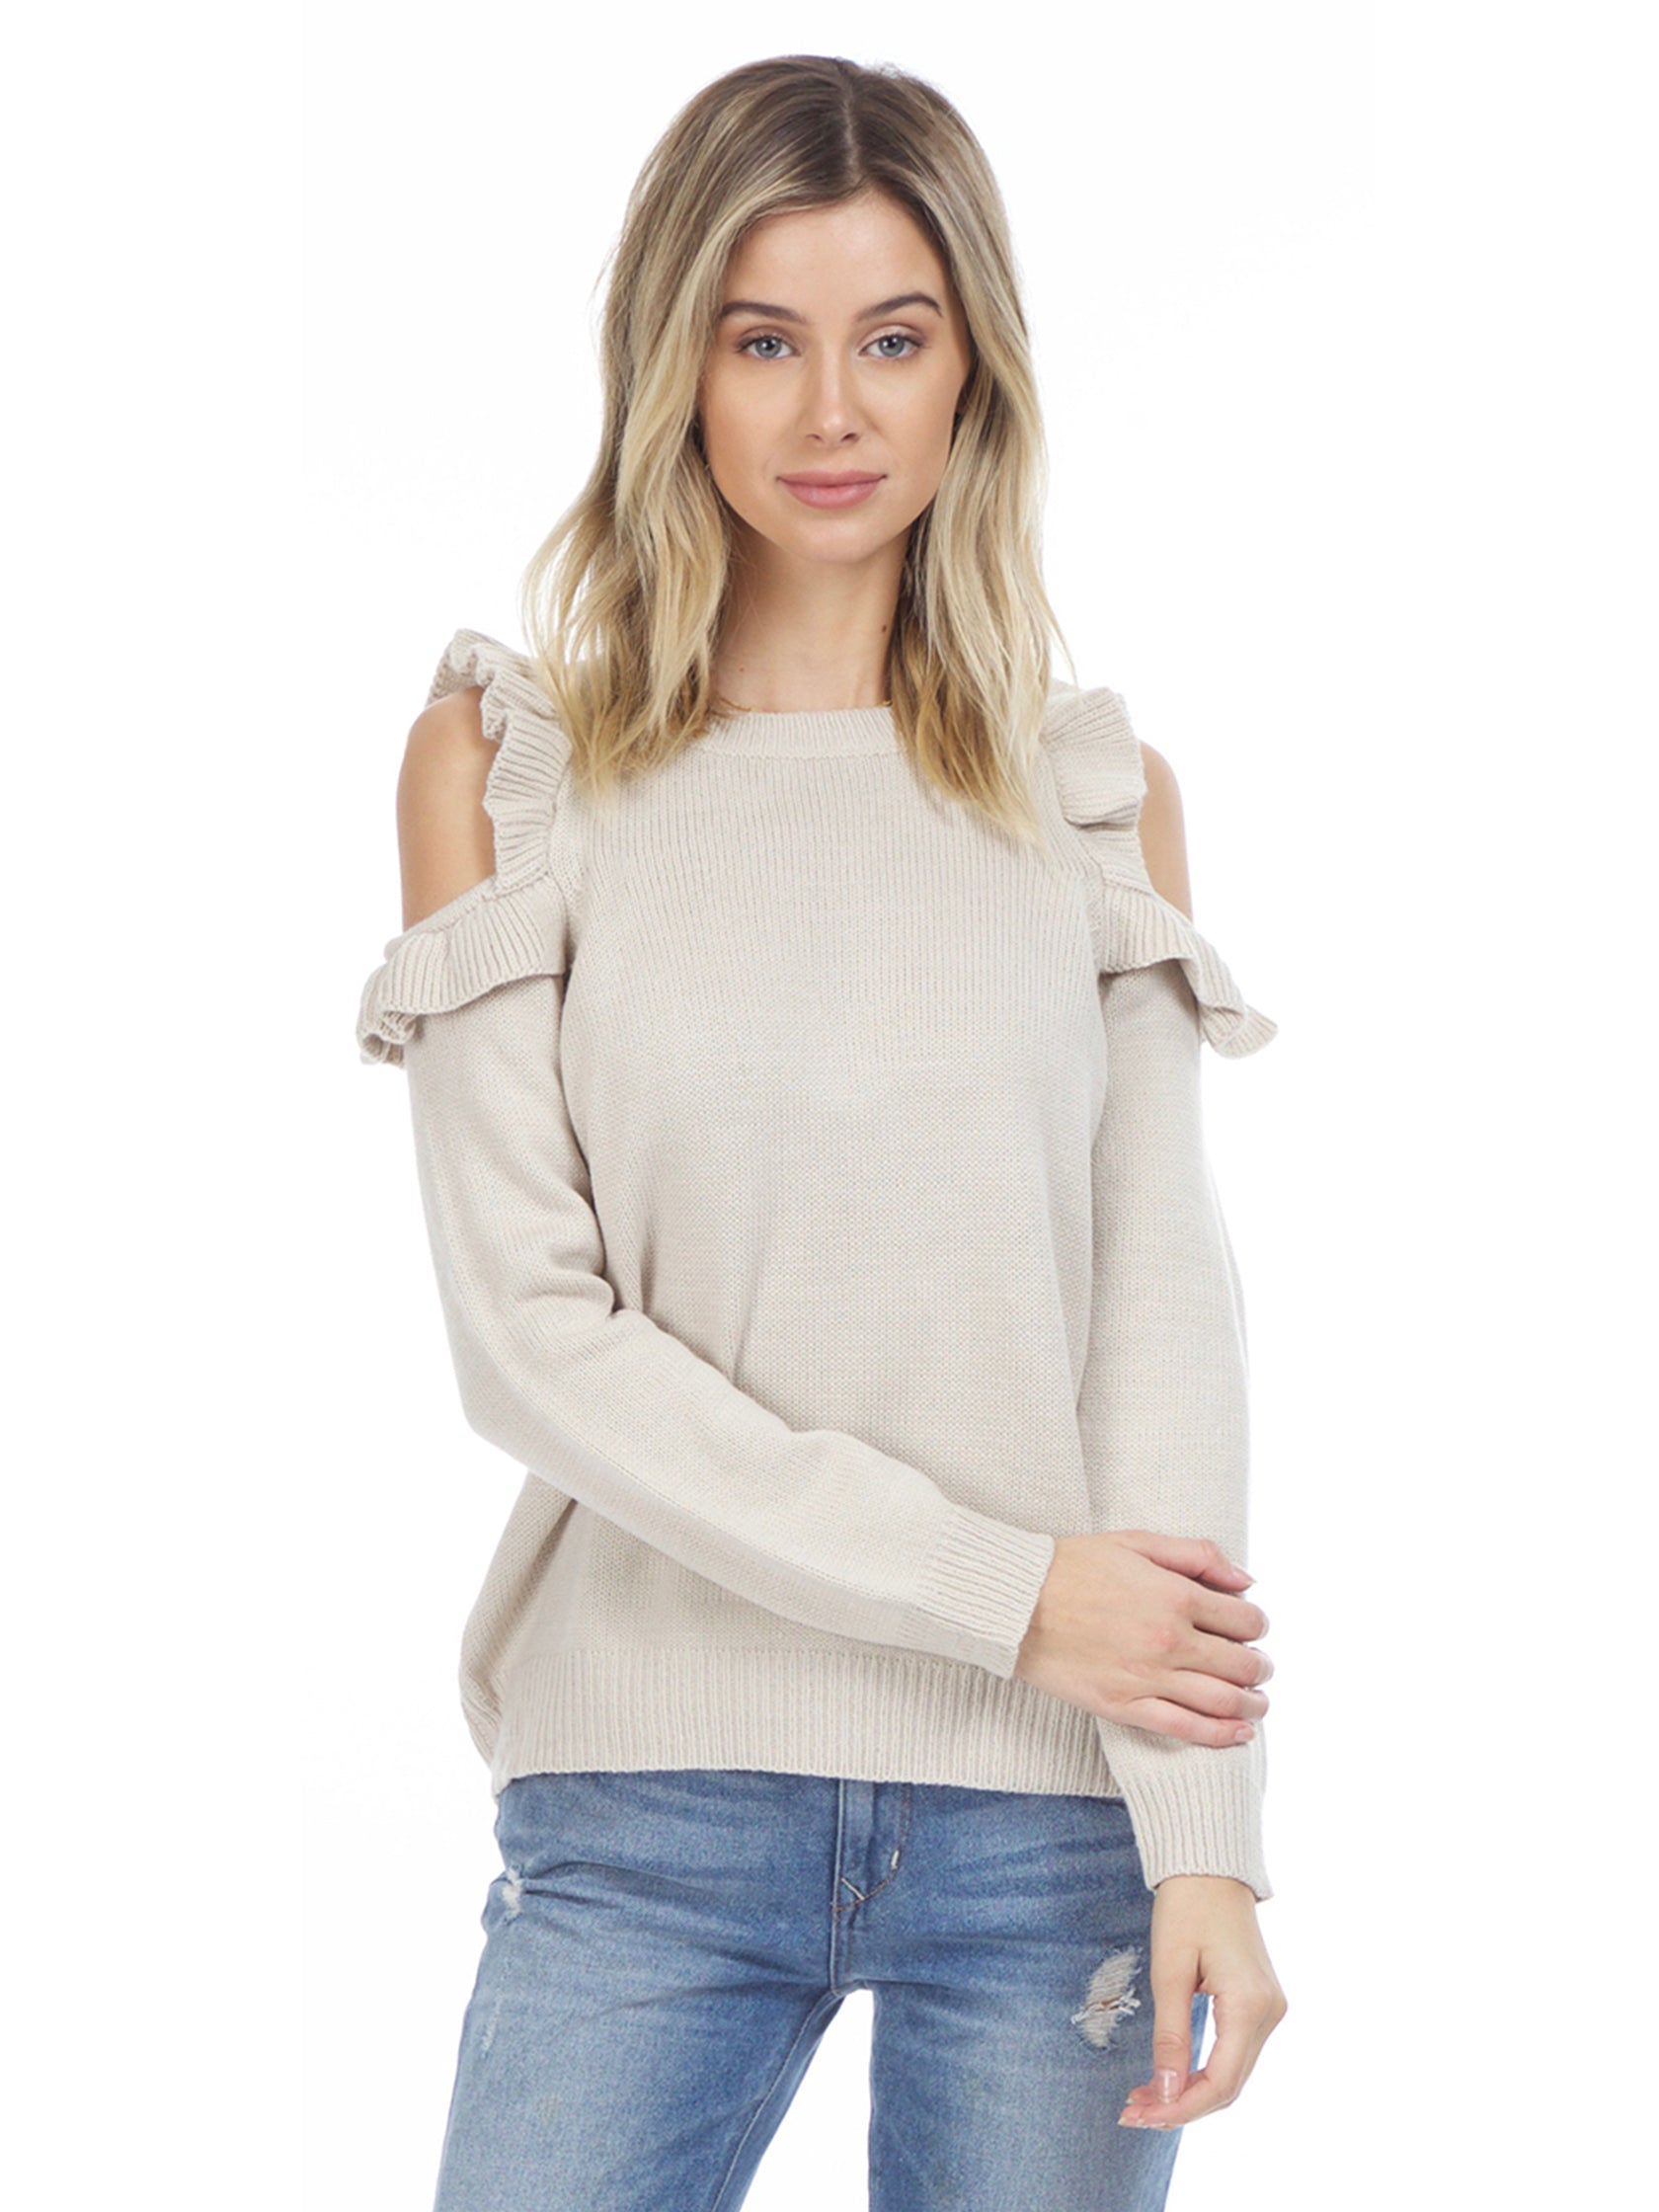 Woman wearing a sweater rental from FashionPass called Harmony Cold Shoulder Sweater